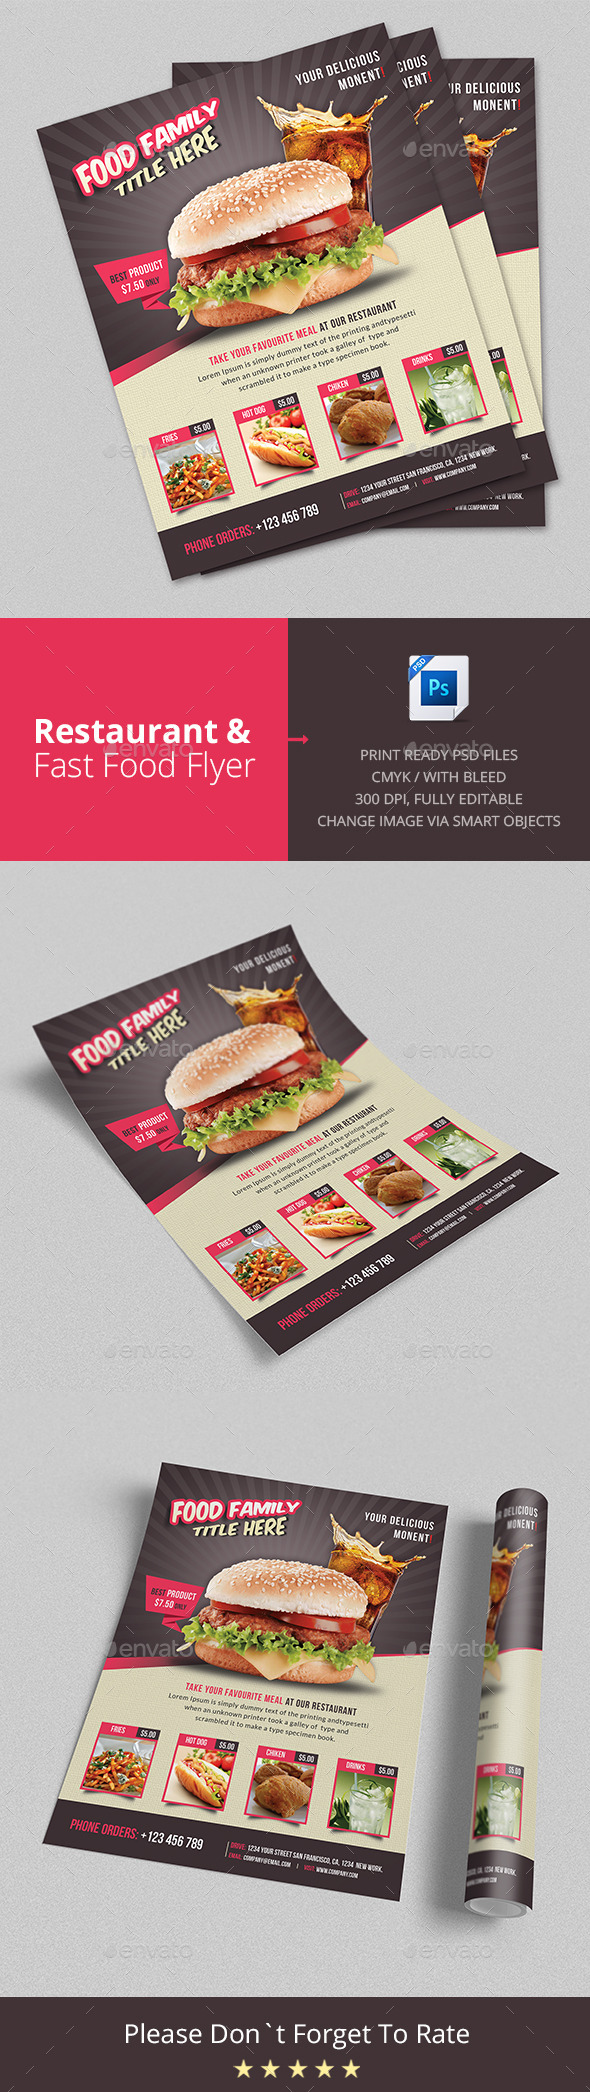 Restaurant & Fast Food Flyer